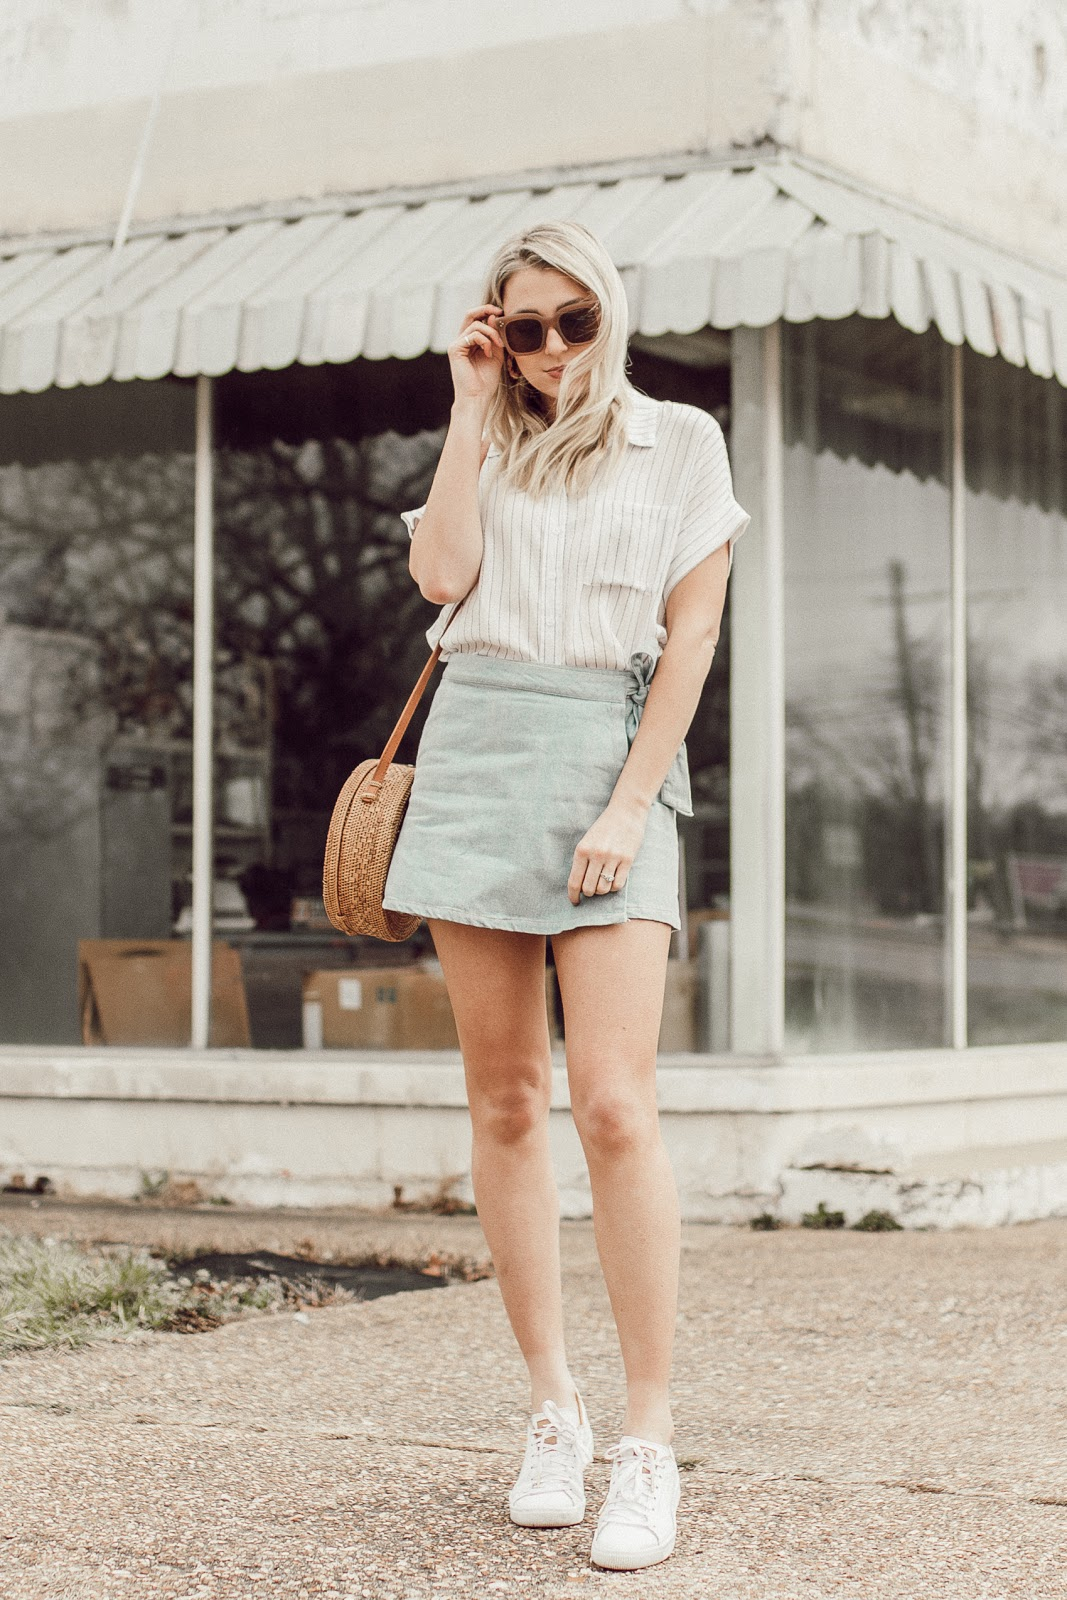 Short sleeve button down blouse with a denim skirt